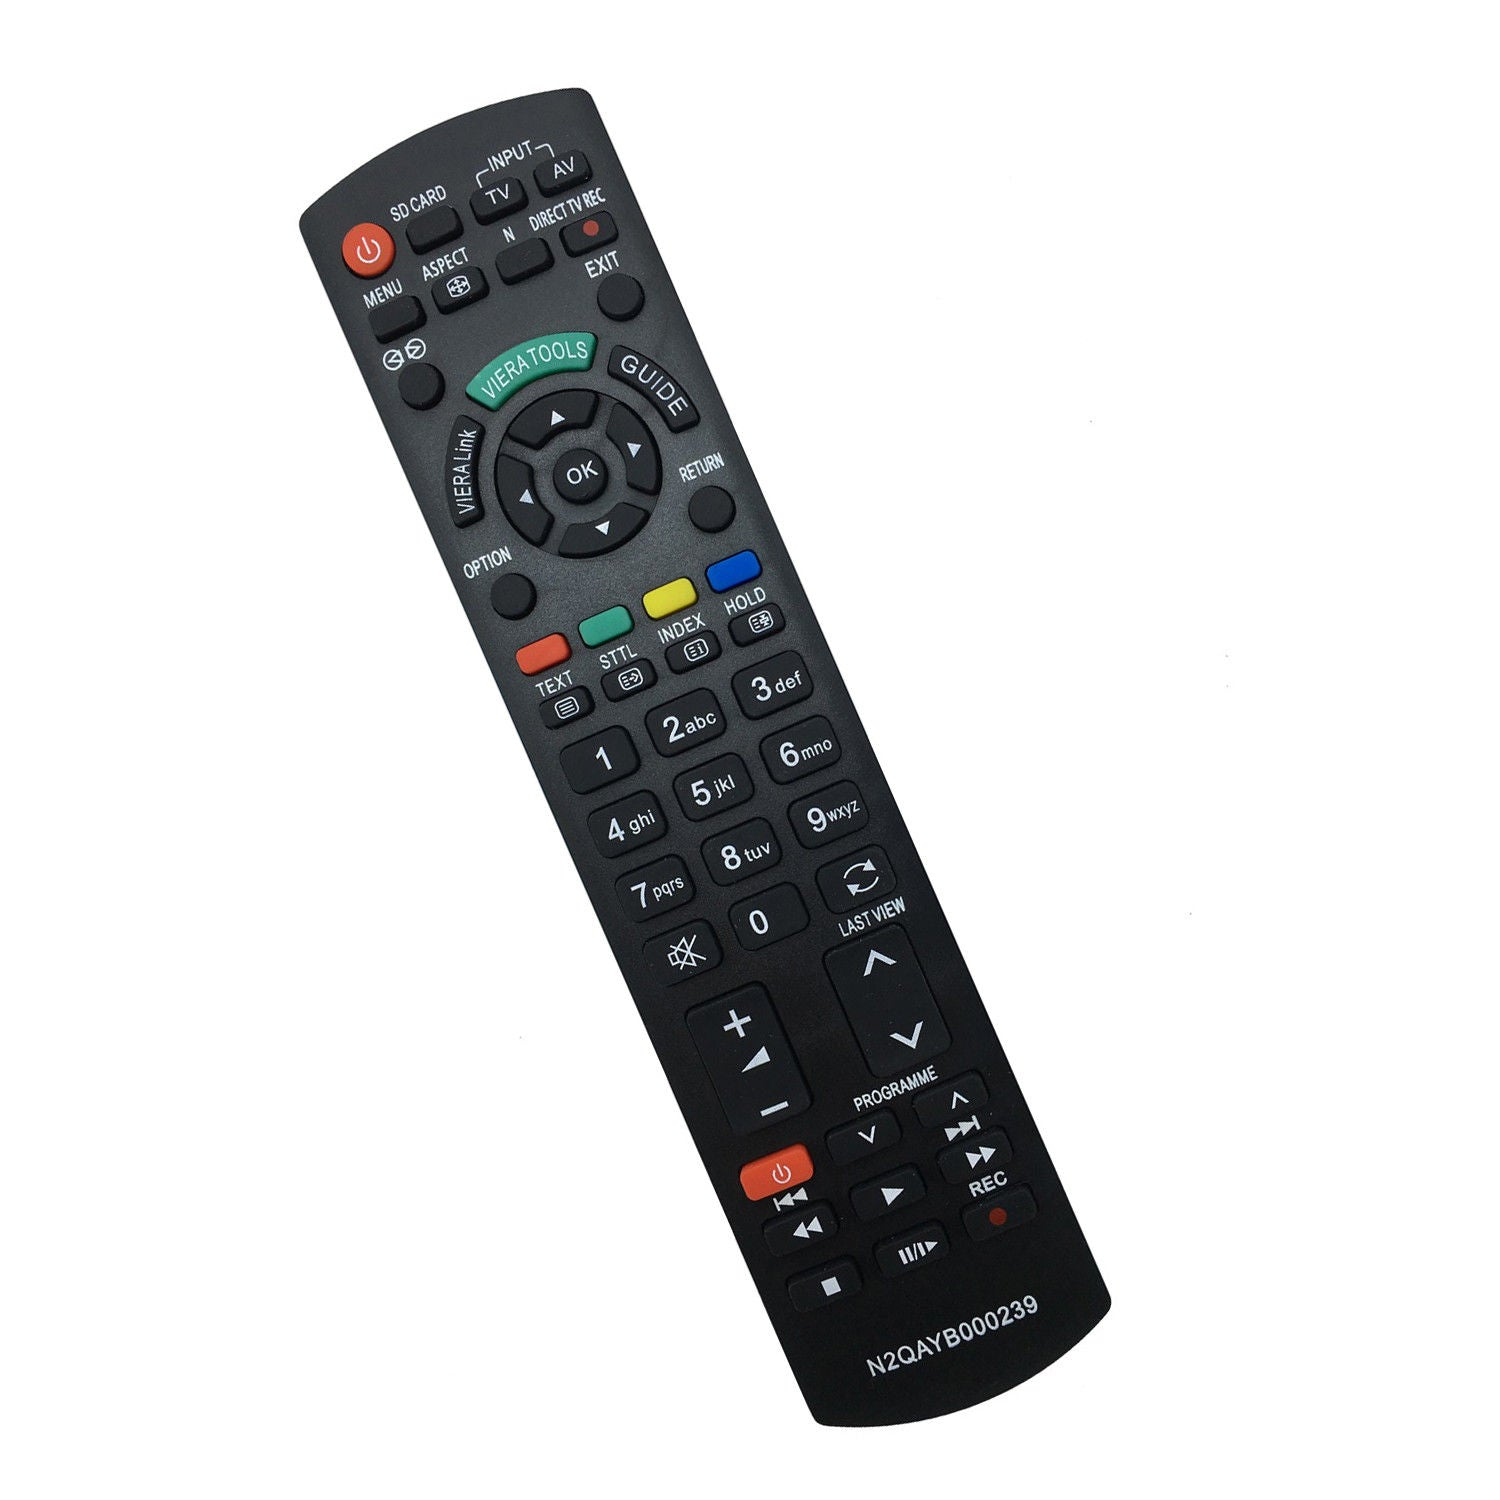 Højmoderne Replacement Remote N2QAYB000239 for Panasonic LCD TV PLASMA sub VZ-03